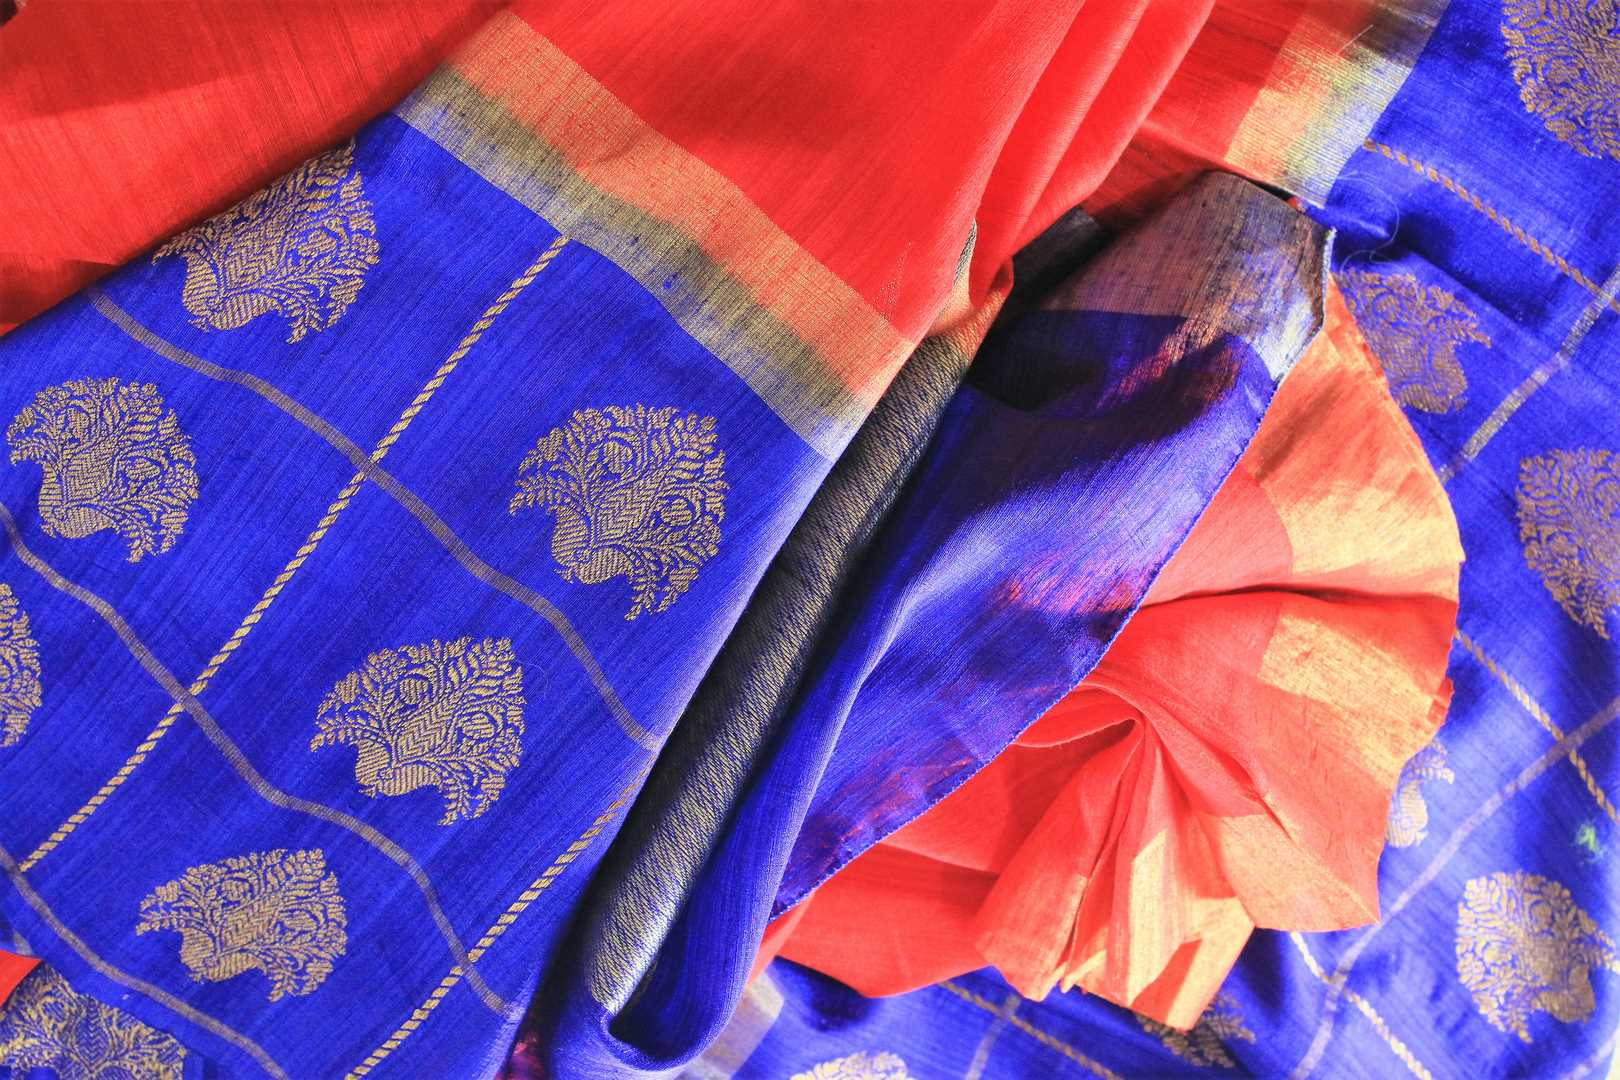 Buy red and blue tussar Benarasi saree online in USA with embroidered sari blouse. The saree is an alluring choice for a traditional look at weddings and special occasions. Buy more such Indian designer sarees, silk saris in USA at Pure Elegance exclusive fashion store or shop online at the comfort of your home.-details